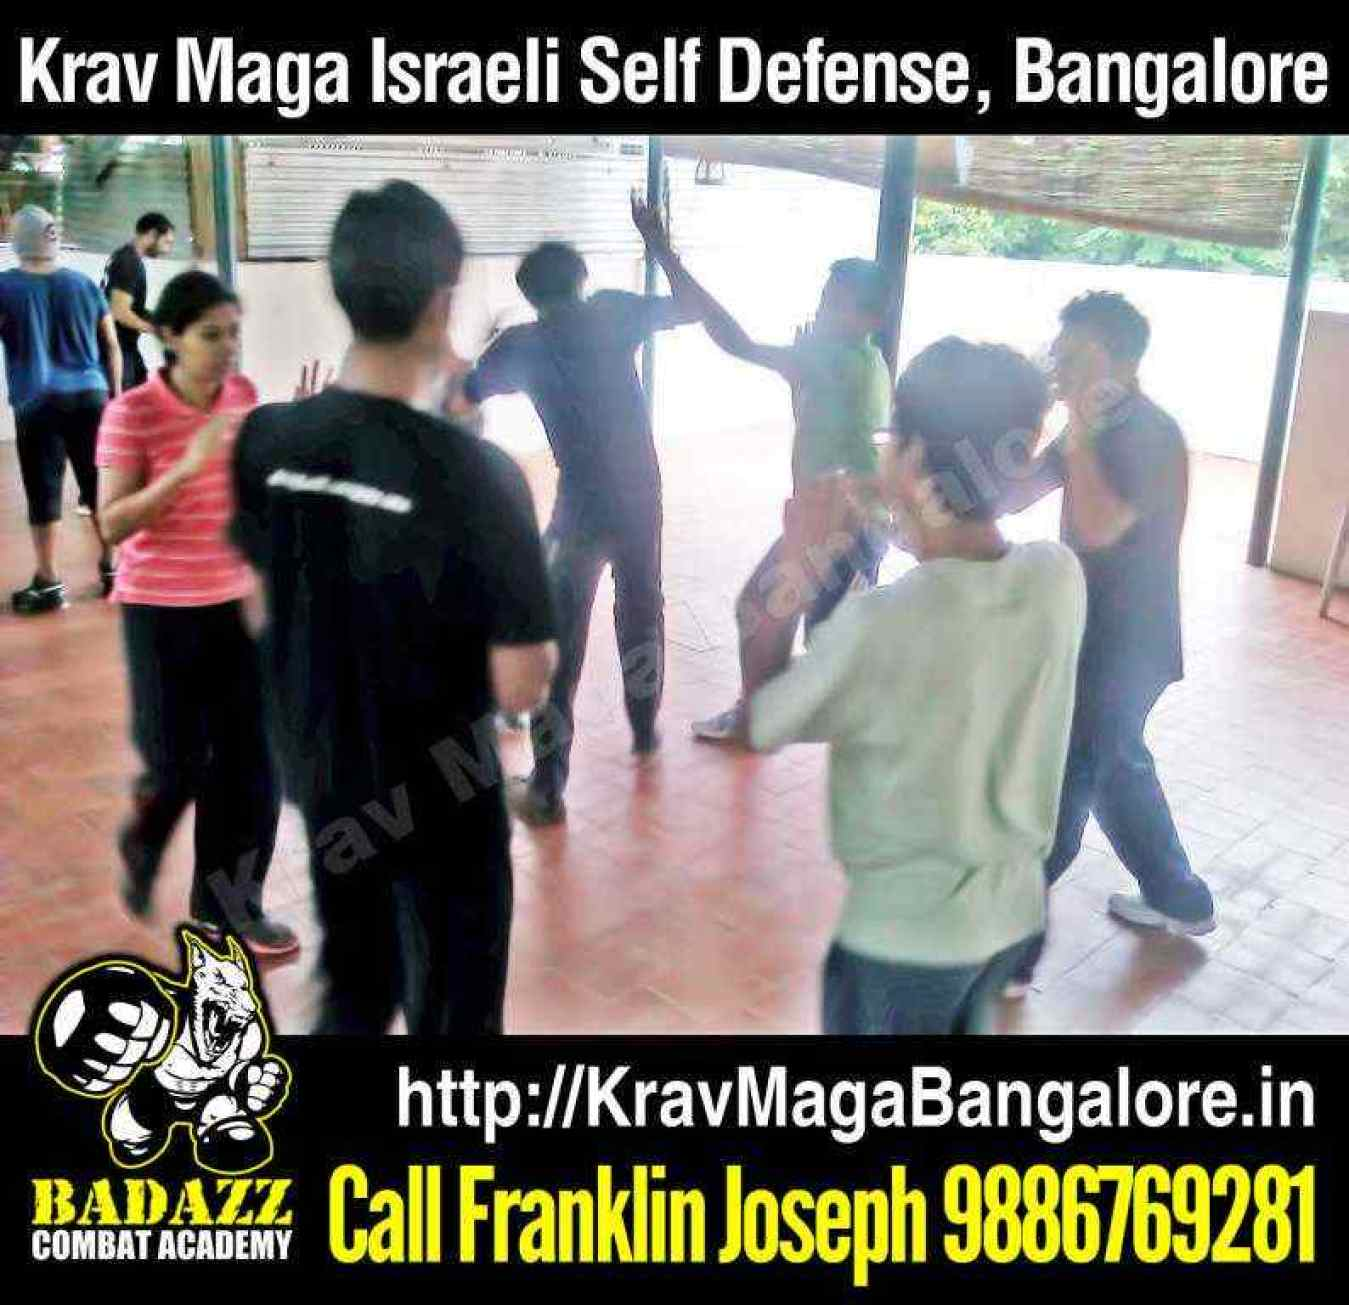 Krav-Maga Photo Oct 20 (9)